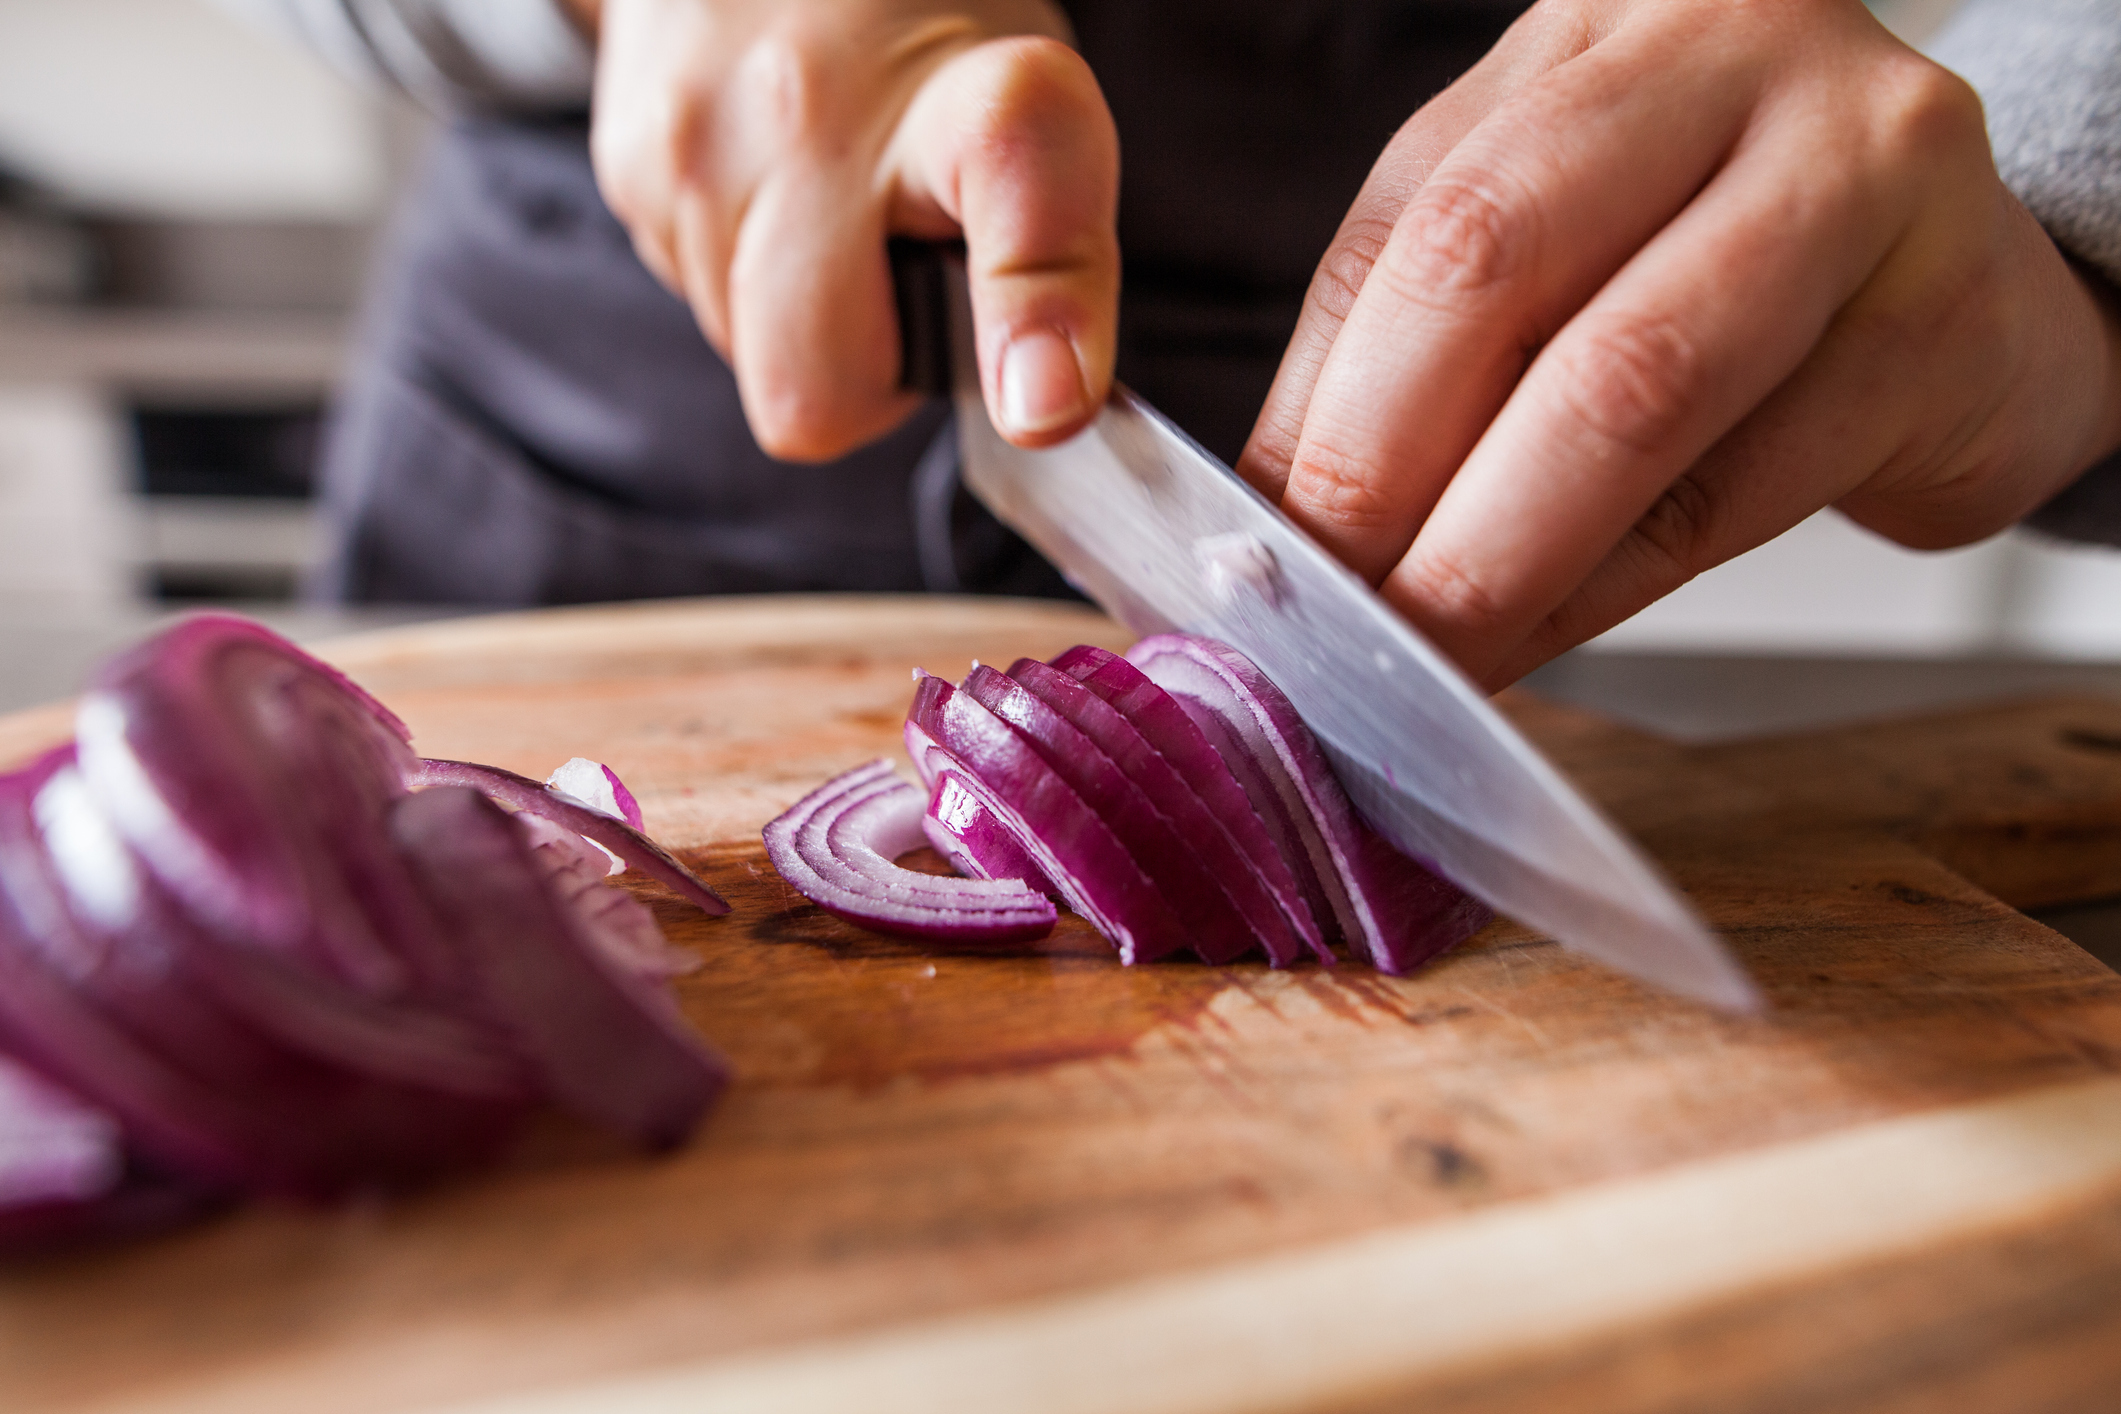 cutting onions on board